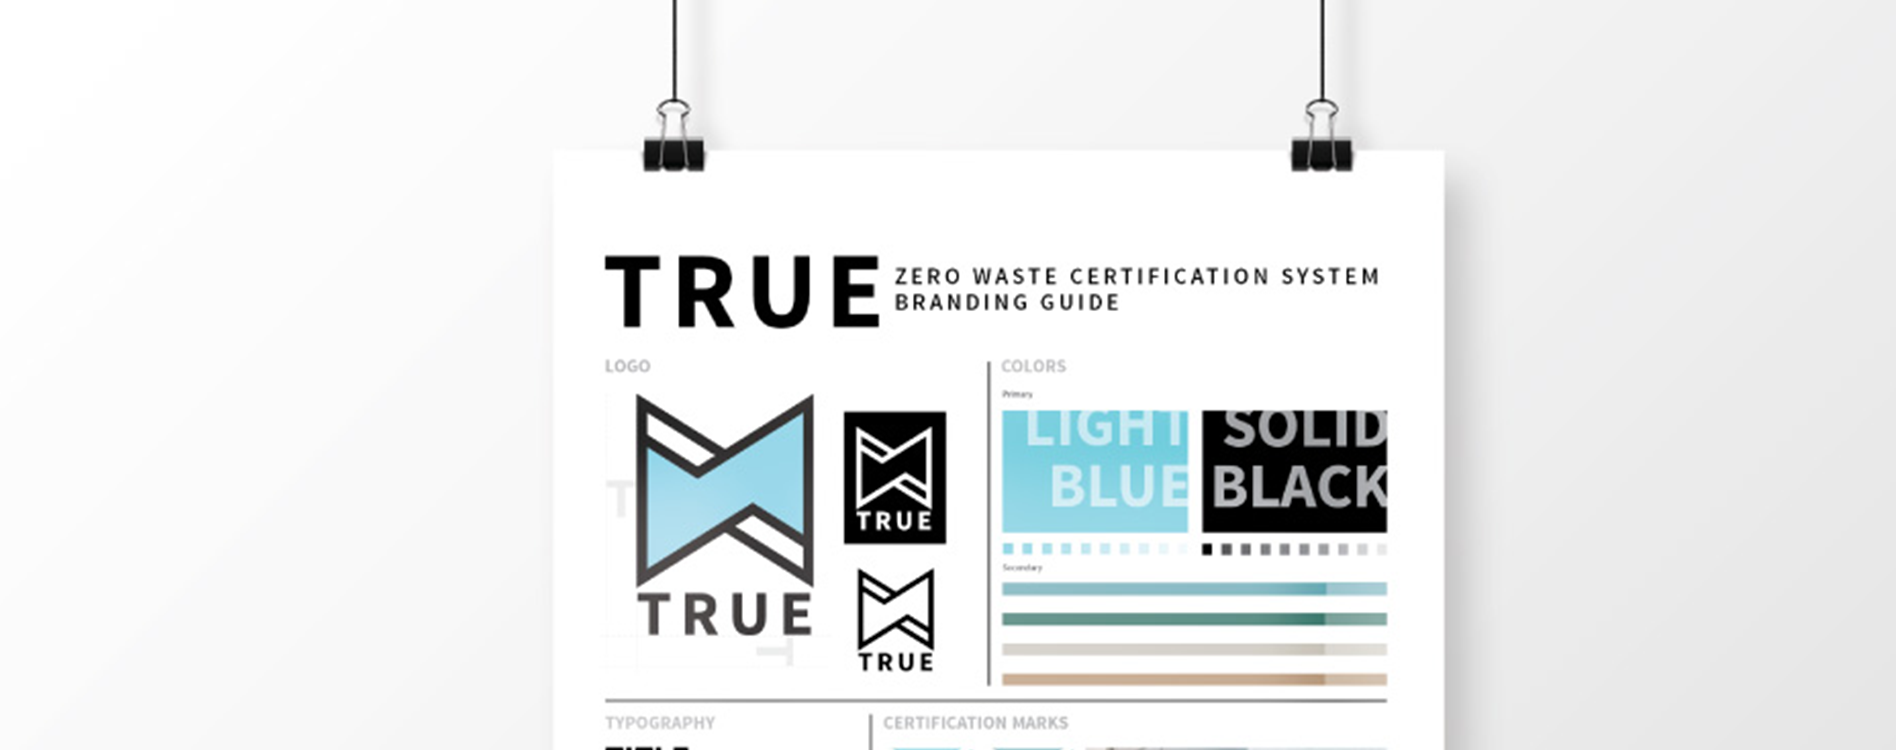 Creating the TRUE Zero Waste brand identity